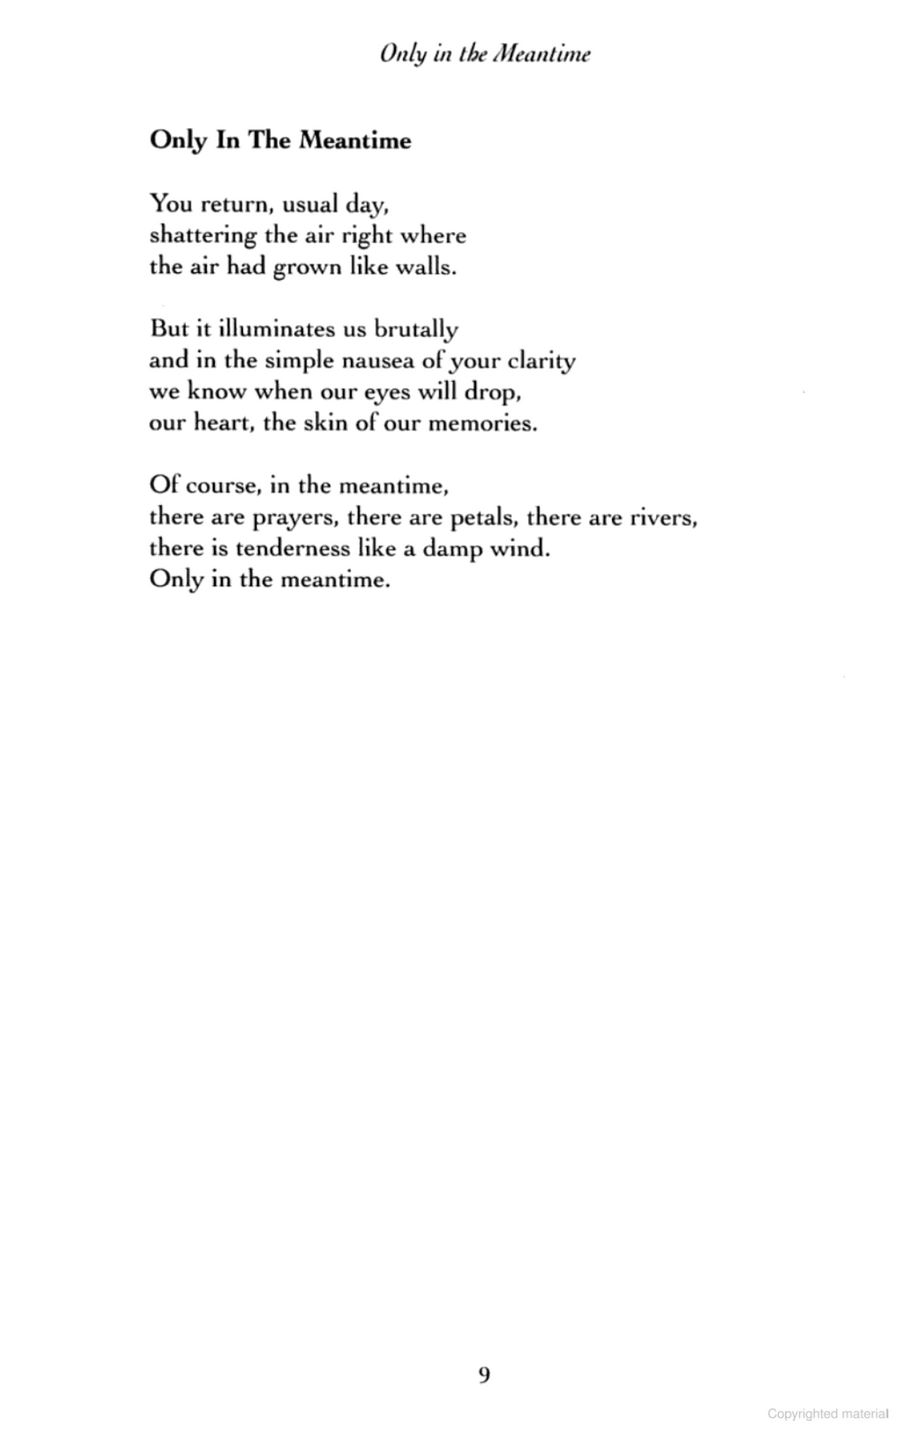 Only in the Meantime and Office Poems by Mario Benedetti